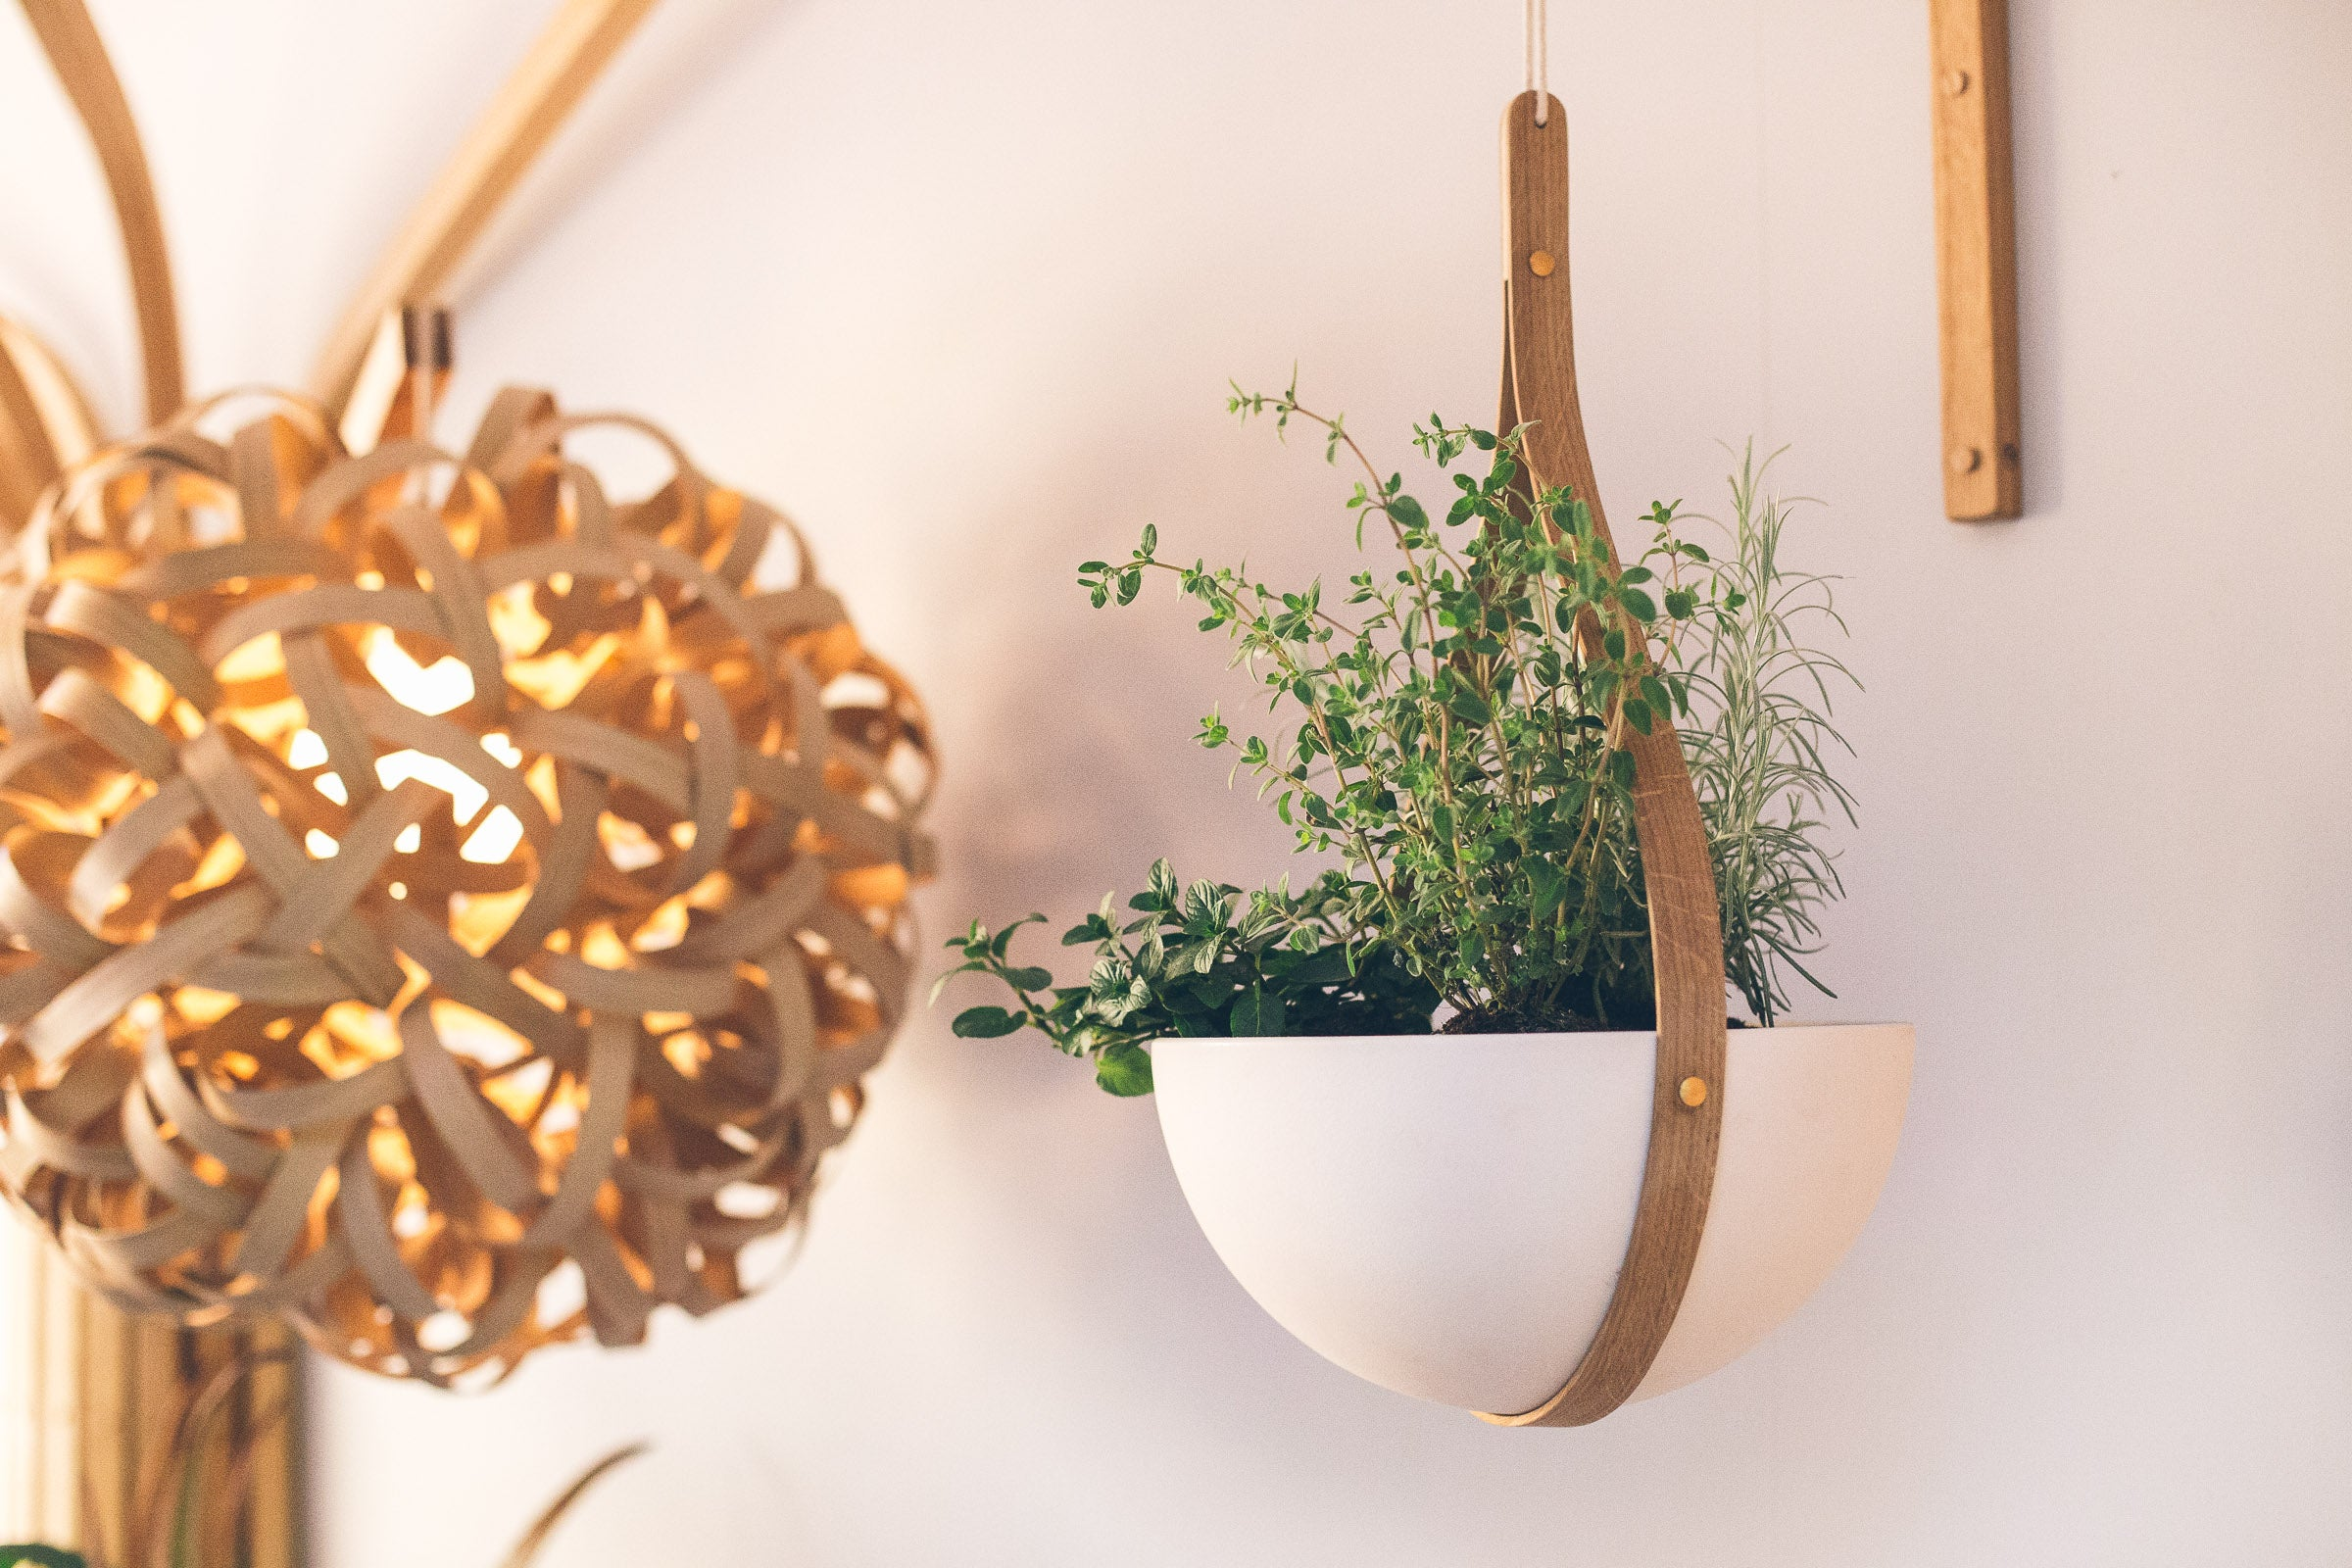 Morvah ceiling hanging planters